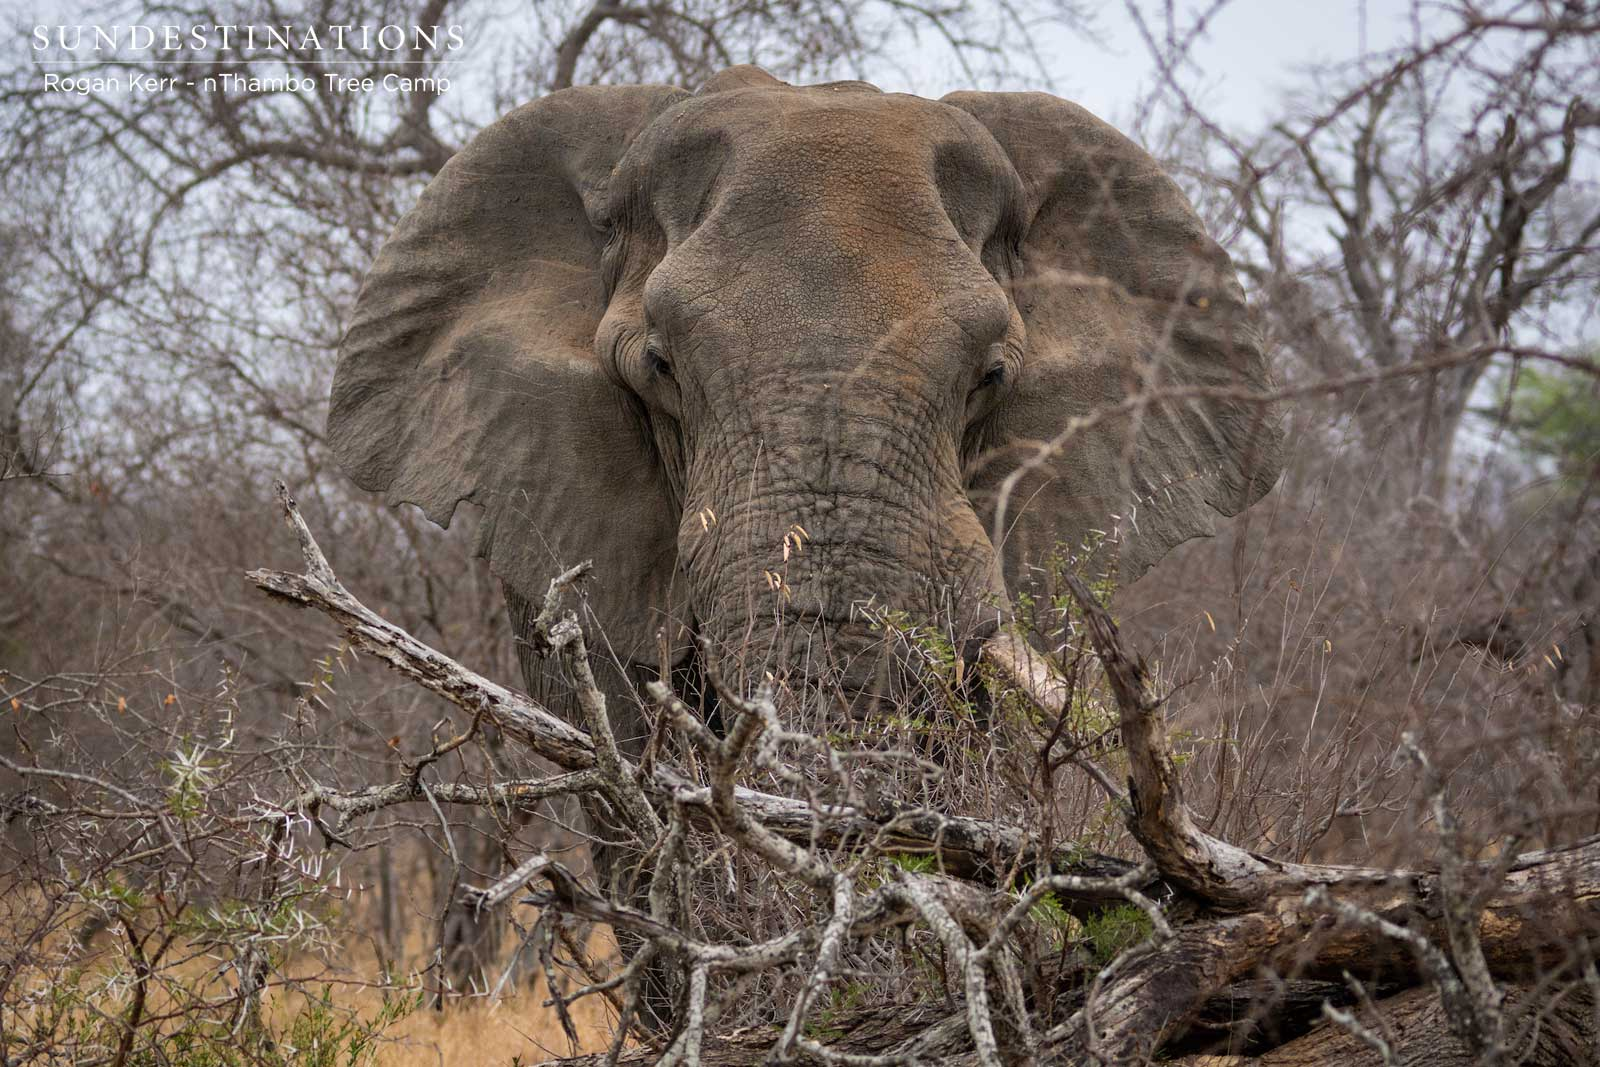 Elephant at nThambo Tree Camp